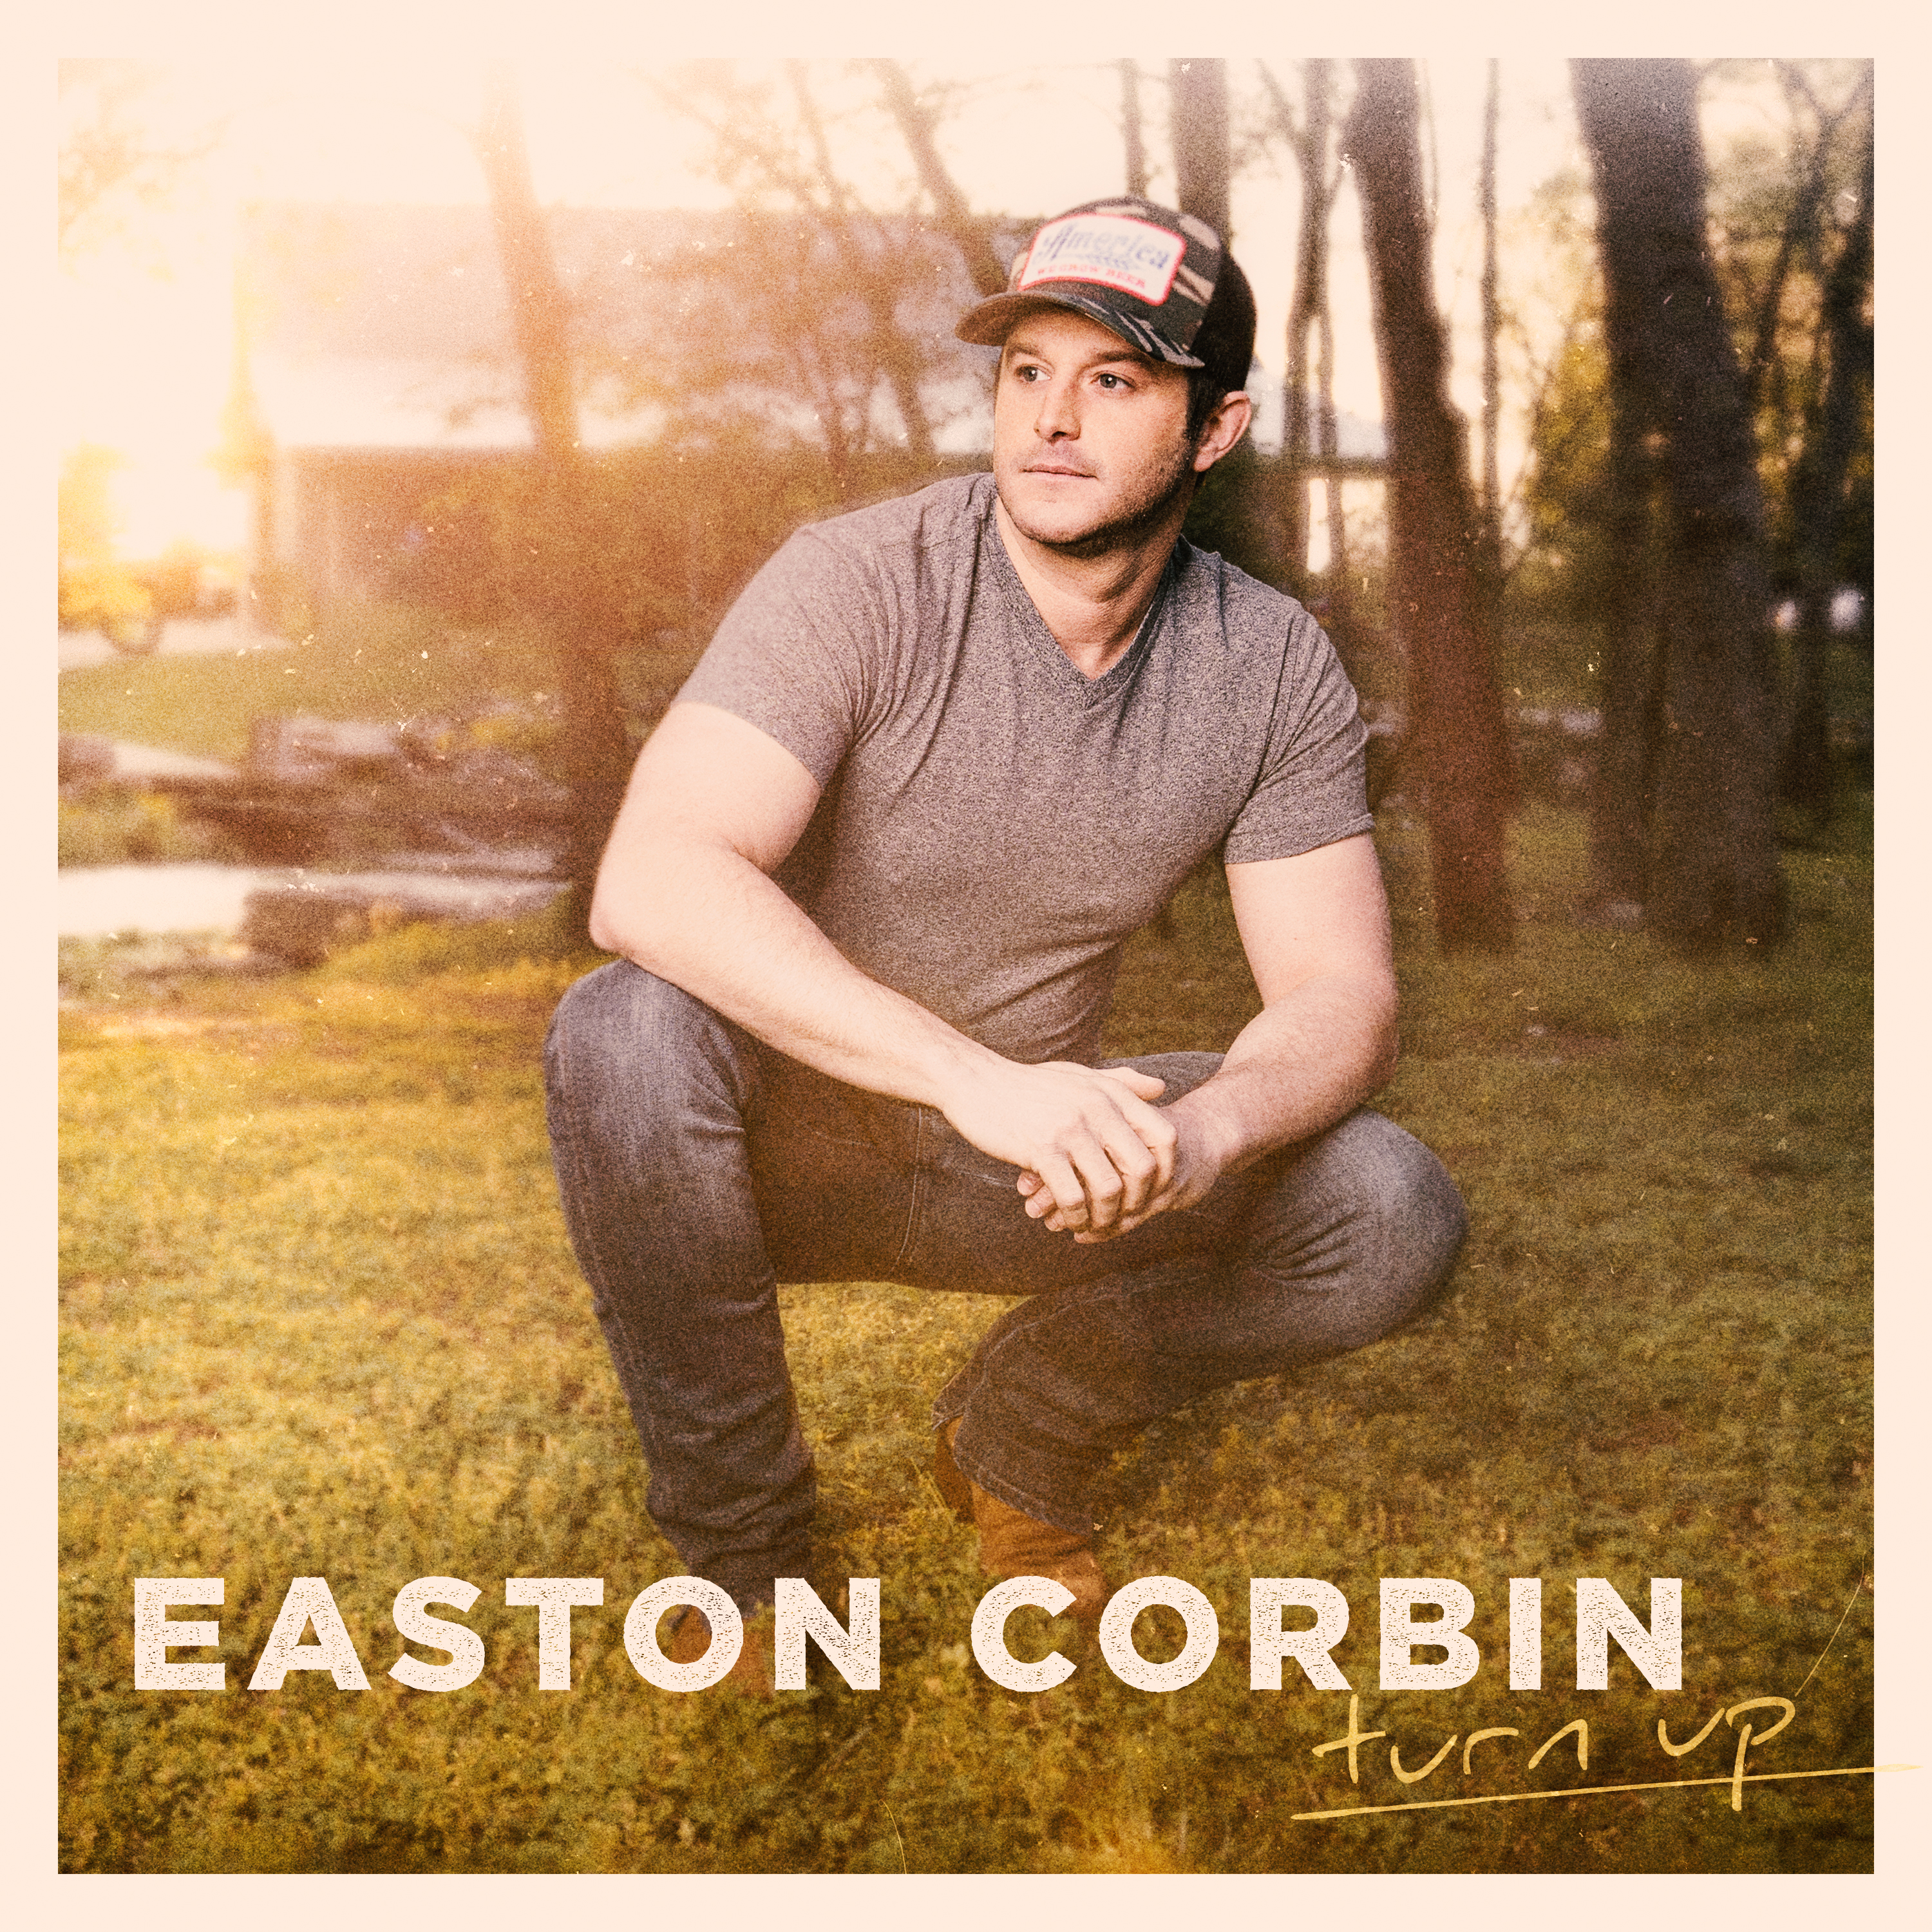 Easton Corbin Releases Summer Pick-Me-Up With Latest Single Turn Up